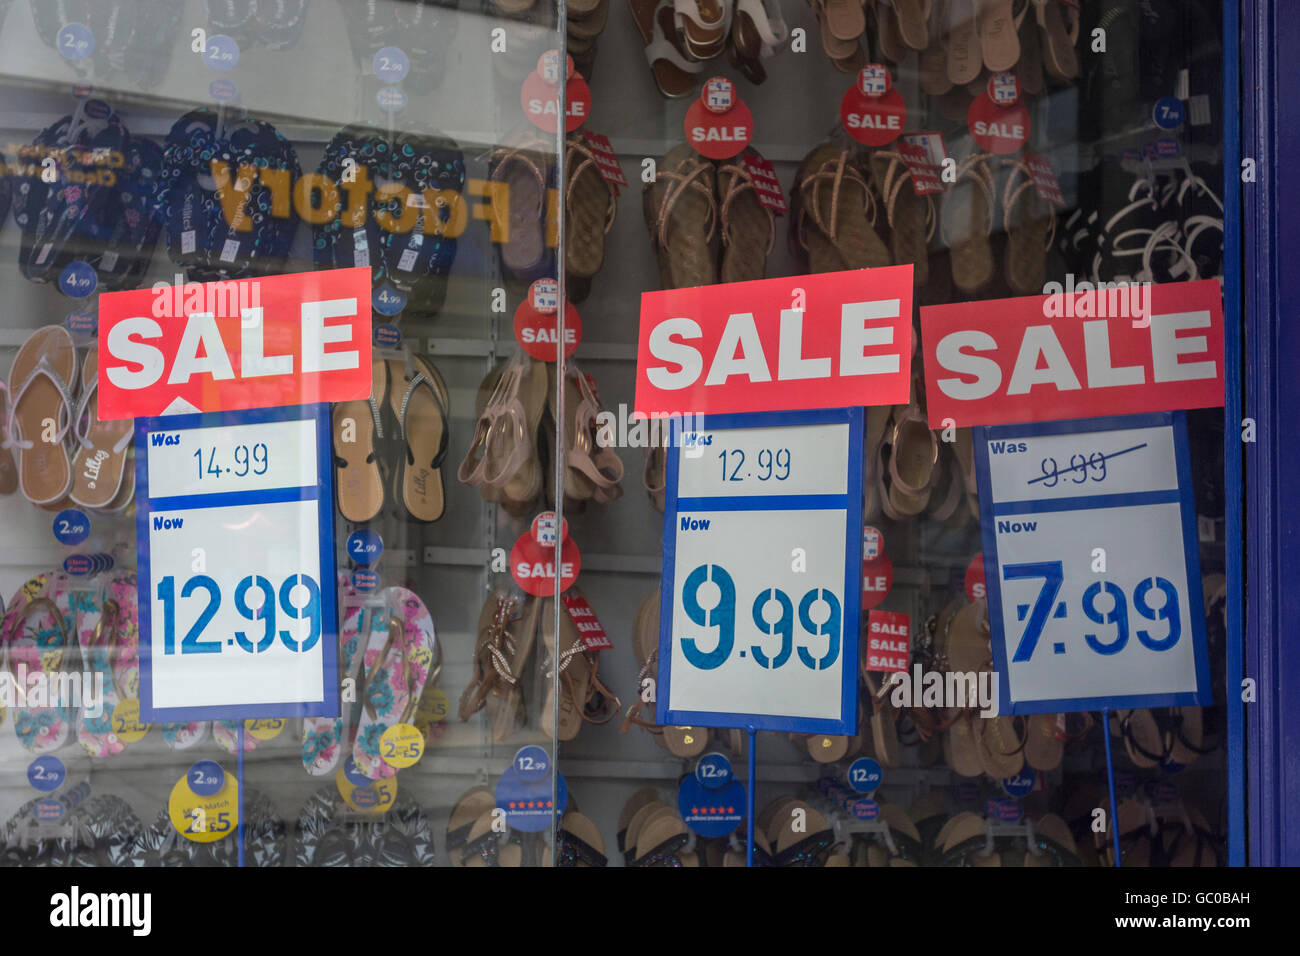 Hight street sales / retail sales / consumer confidence concept. Price reductions. - Stock Image